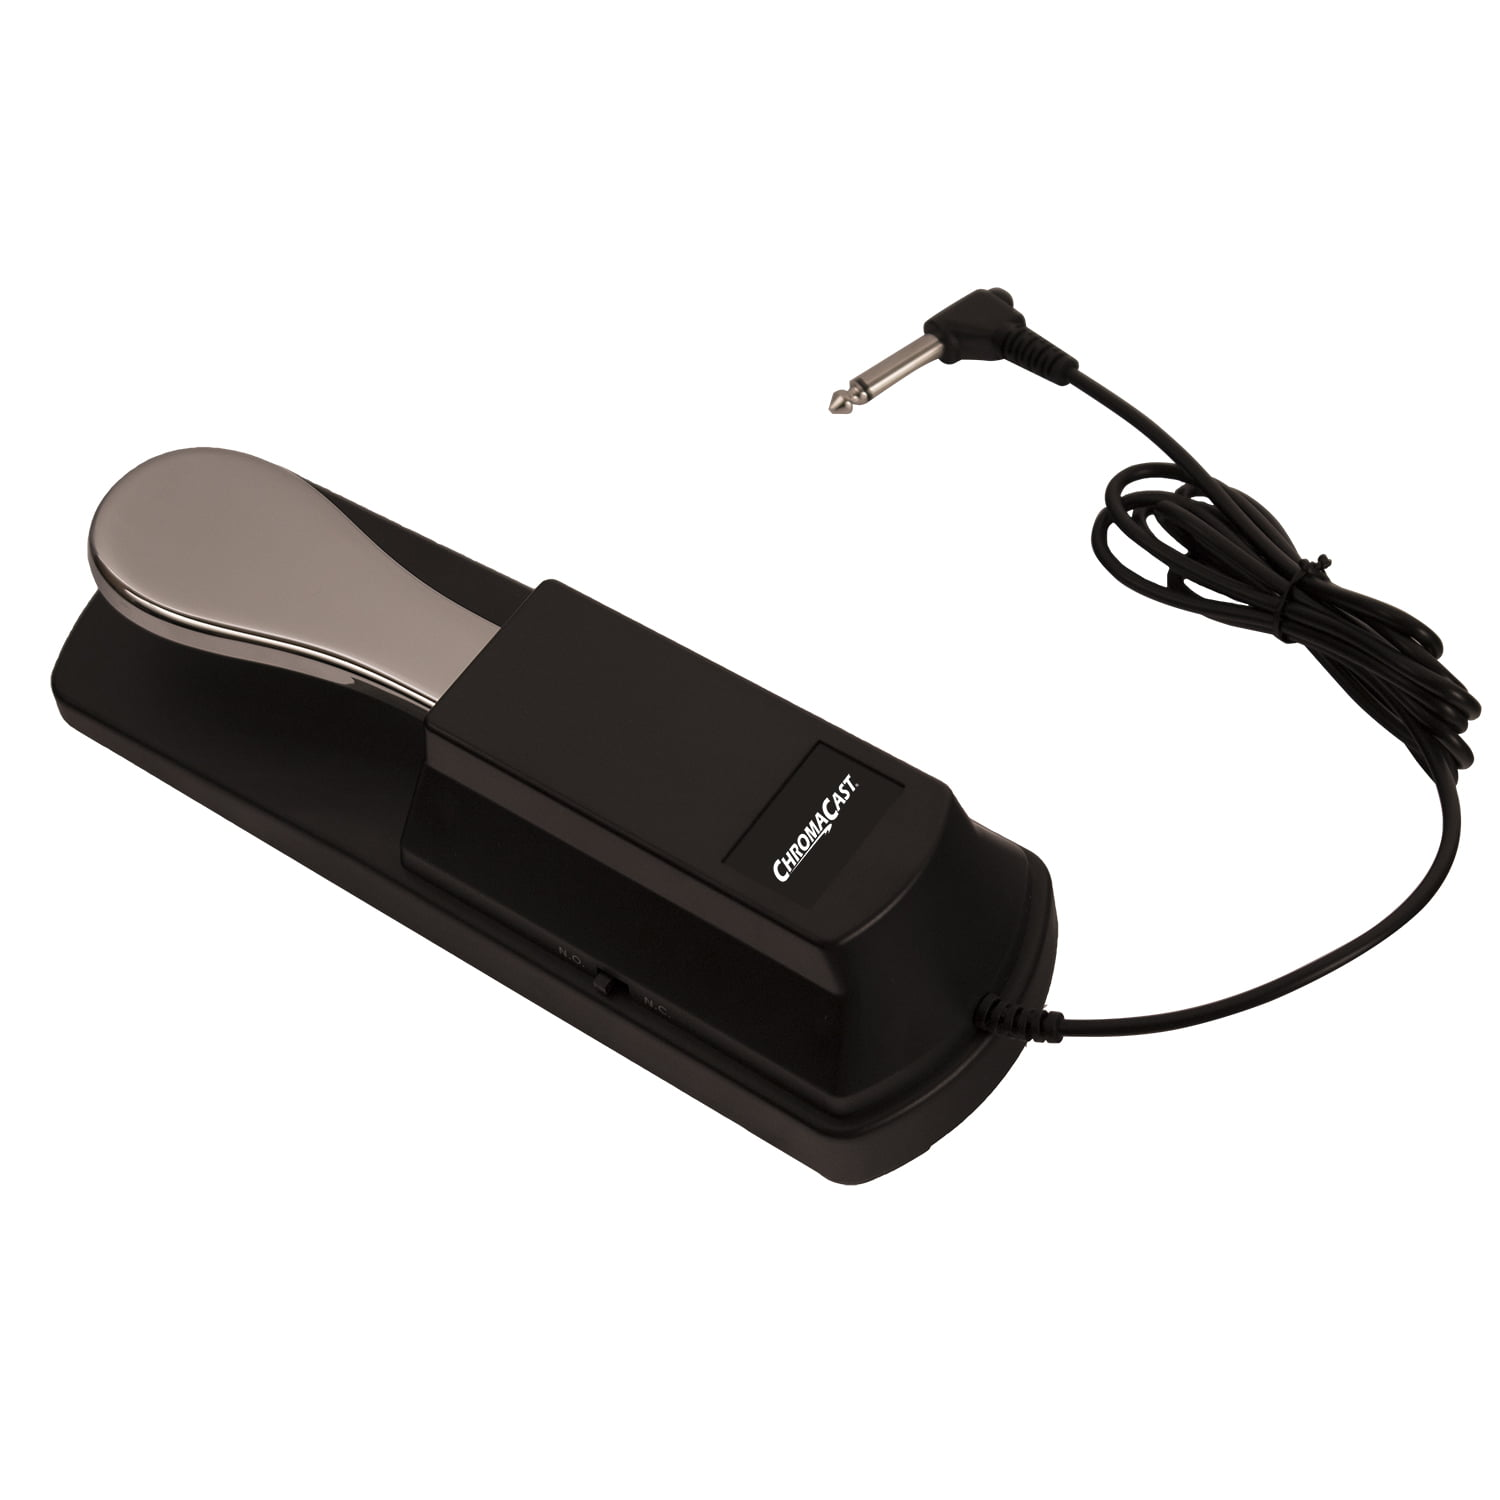 ChromaCast Keyboard Sustain Pedal by ChromaCast